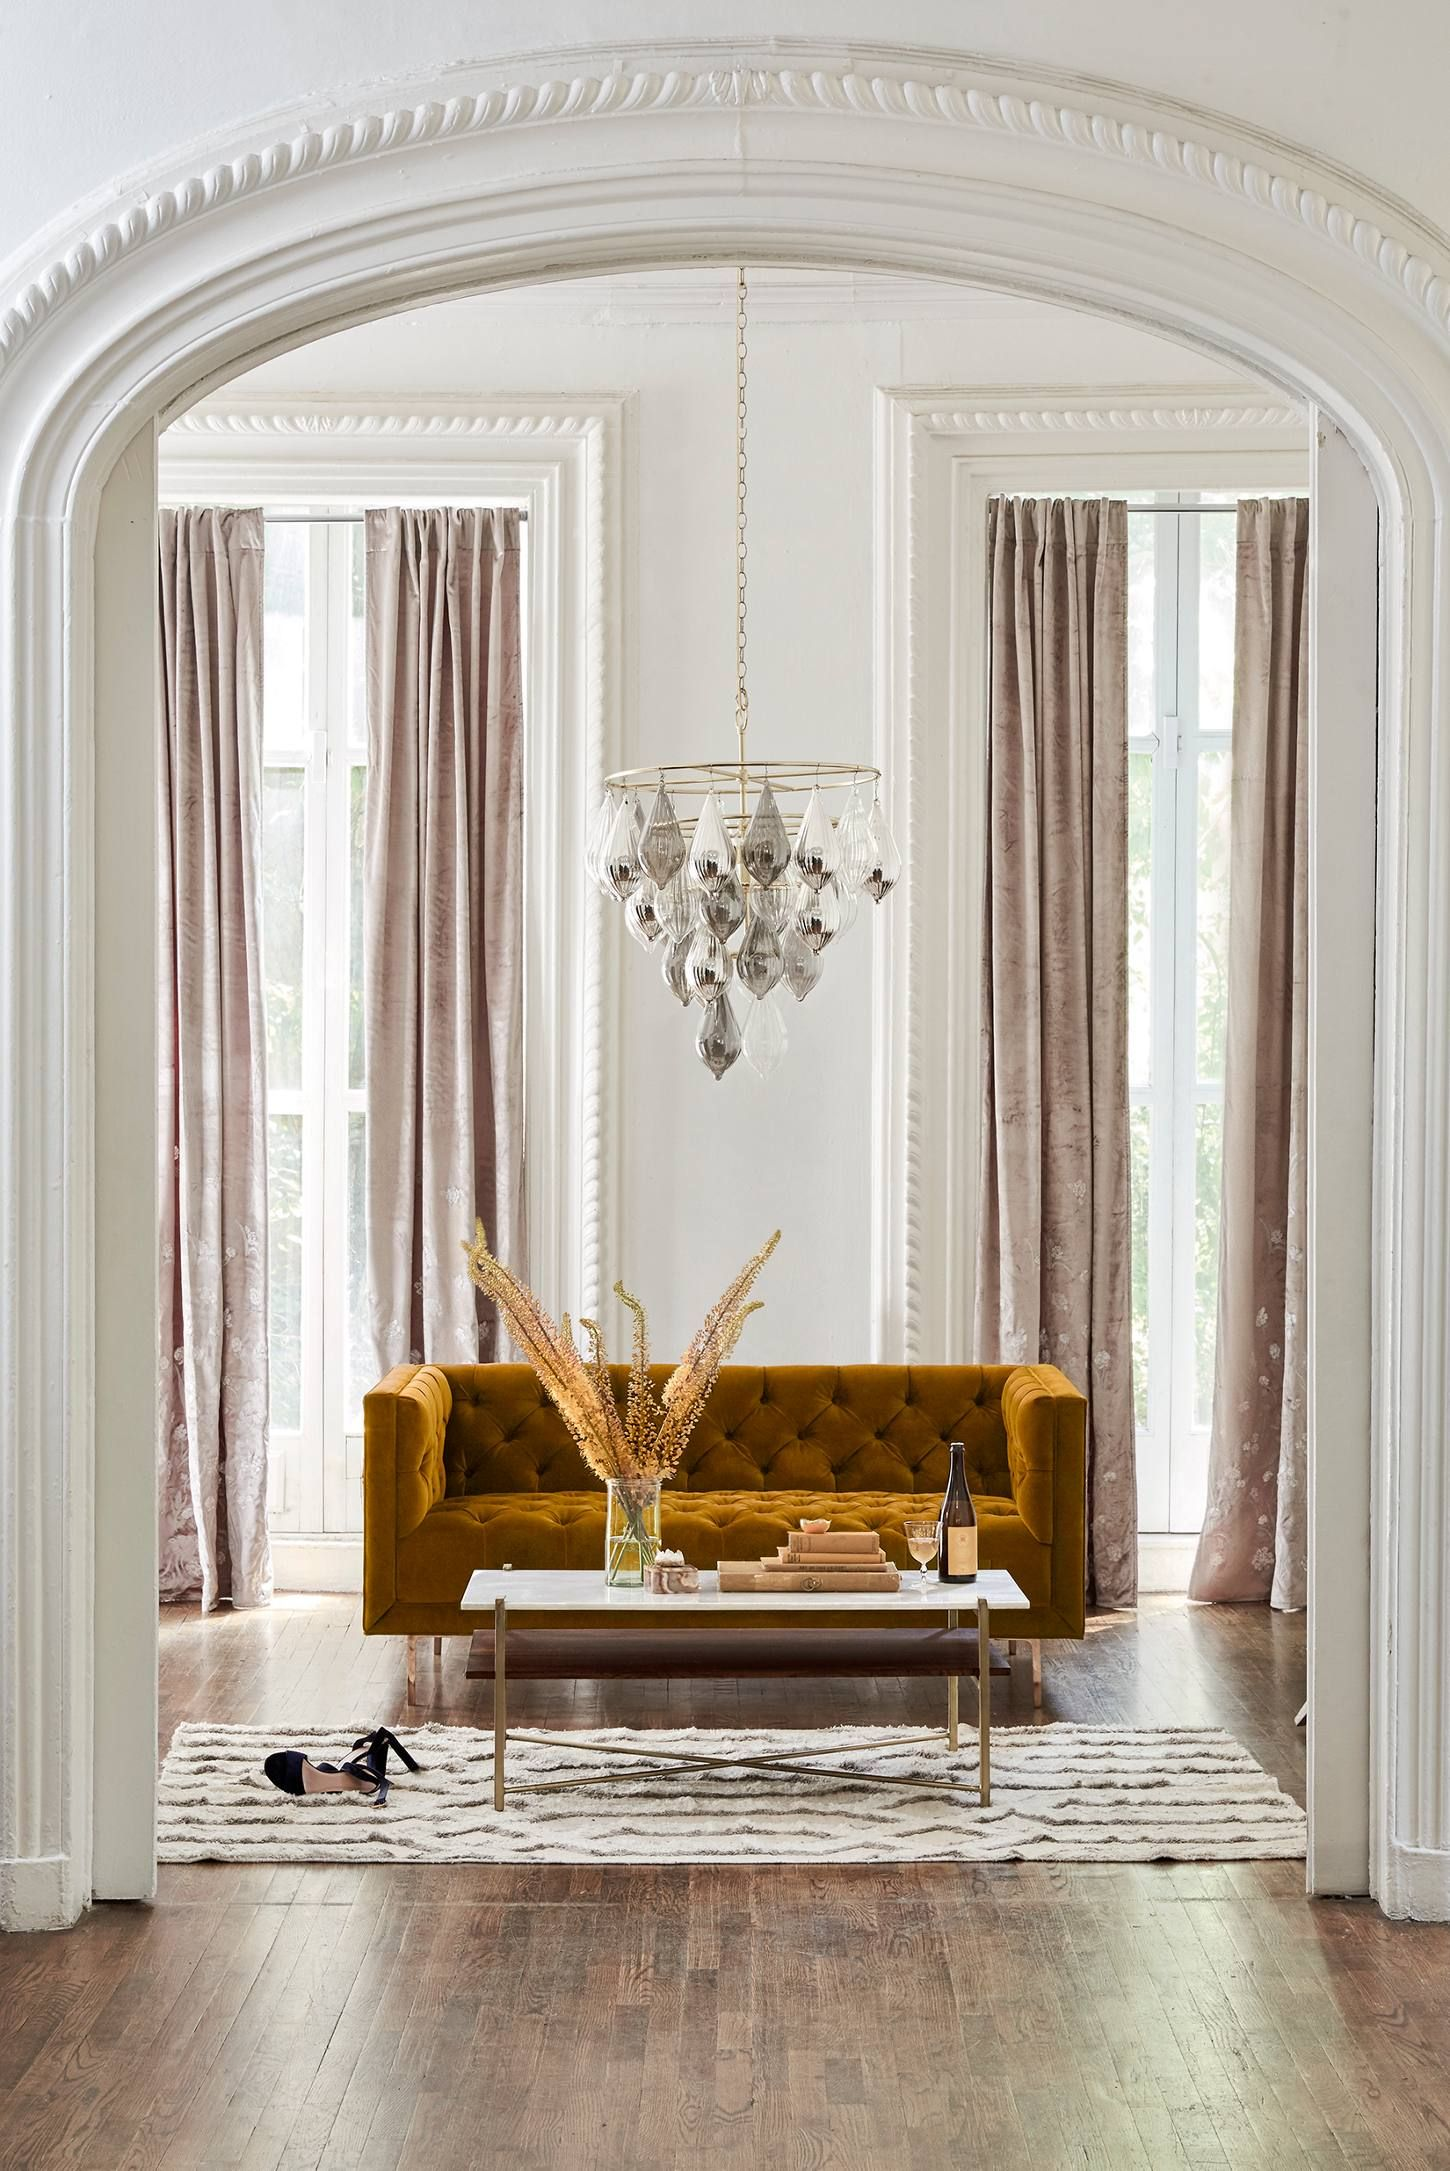 Clustered Droplet Chandelier   Settees, Chandeliers and Living rooms